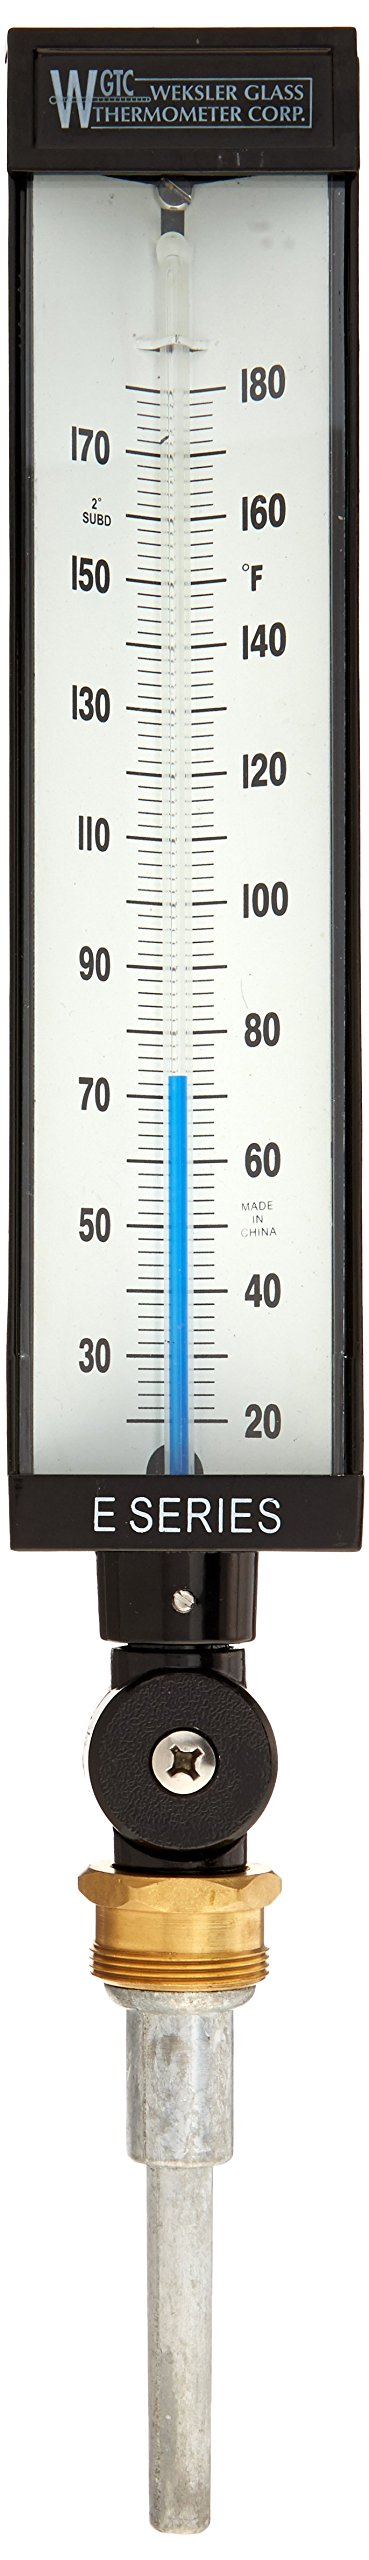 PIC Gauge AS5H9EA-CC 9'' Scale, 3-1/2'' Stem Length, 20/180° F Temperature Range Eco-Red Spirit Filled Industrial Thermometer with Aluminum Case, and Adjustable Angle